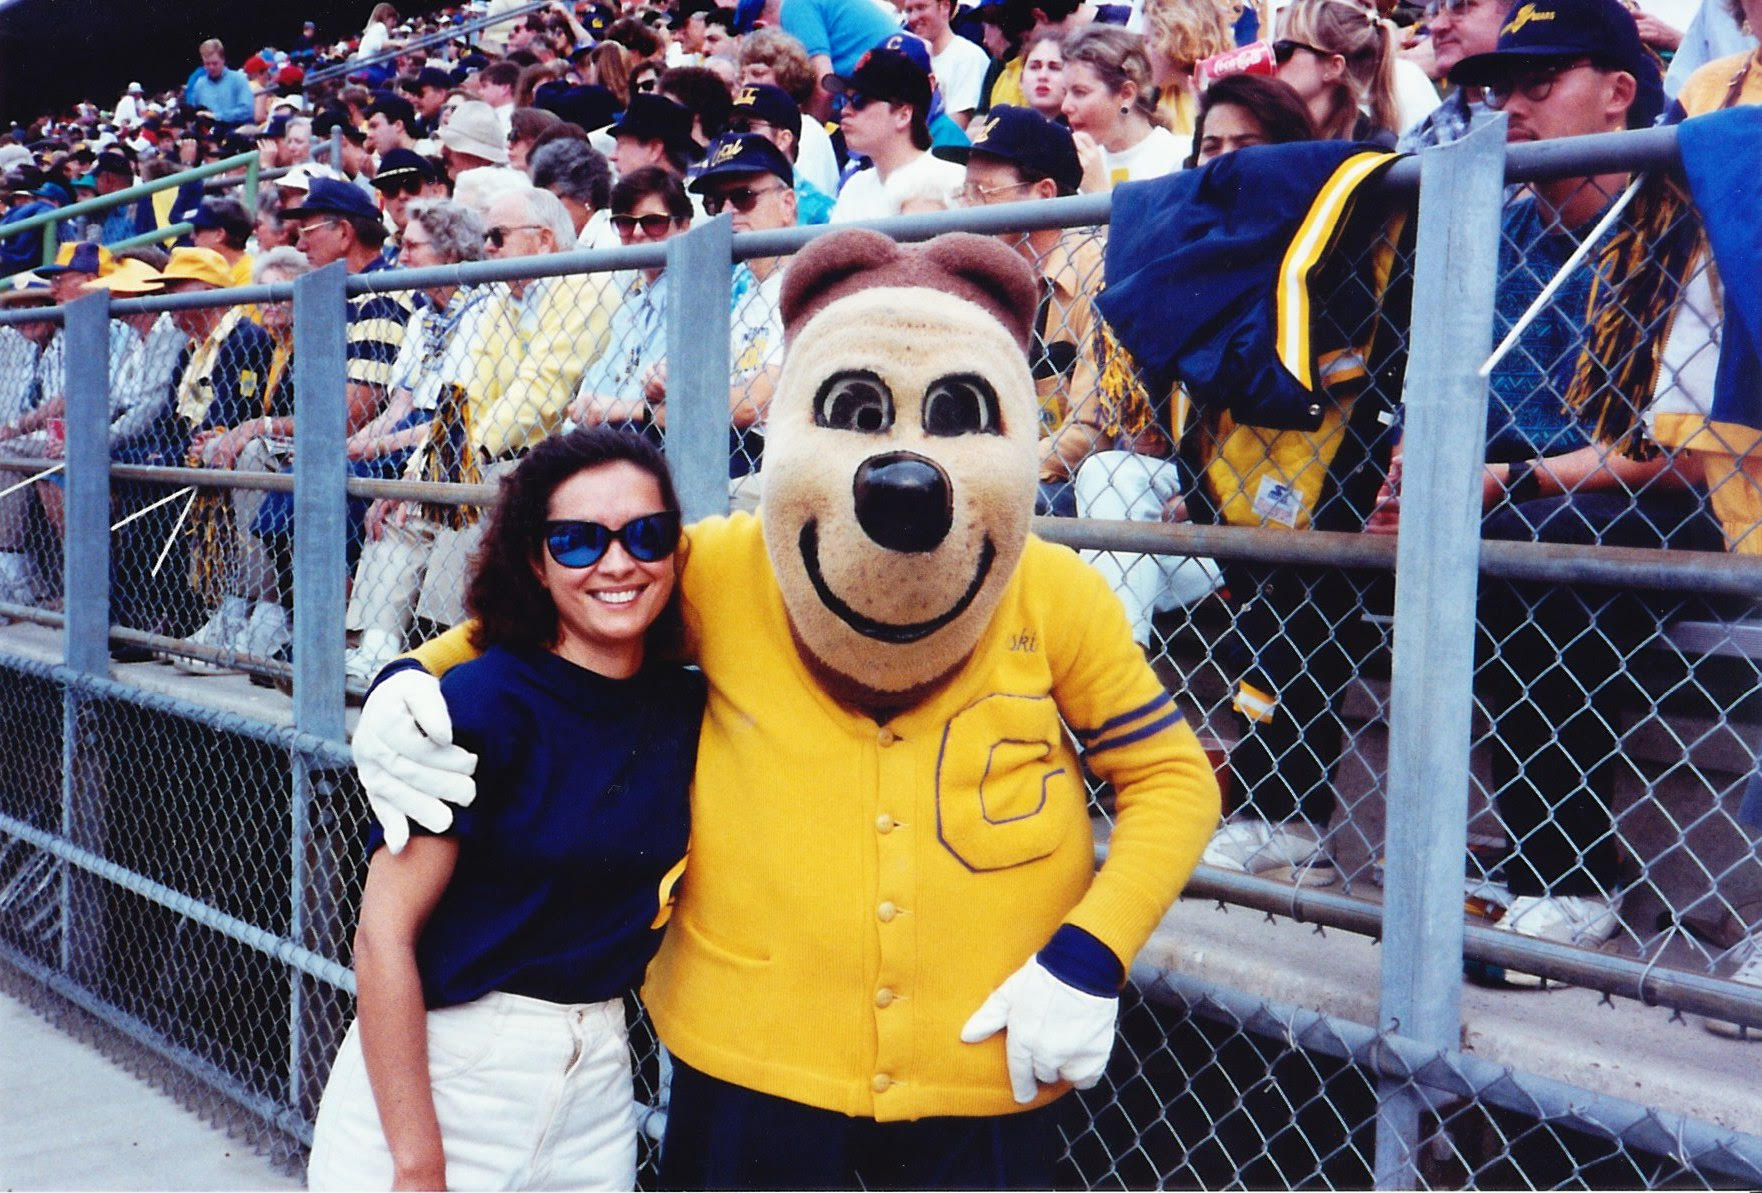 Photo of Michele and Oski in front of the stands. He's wearing his famous letter sweater and white gloves. She's wearing white shorts and a dark, sleeveless top.